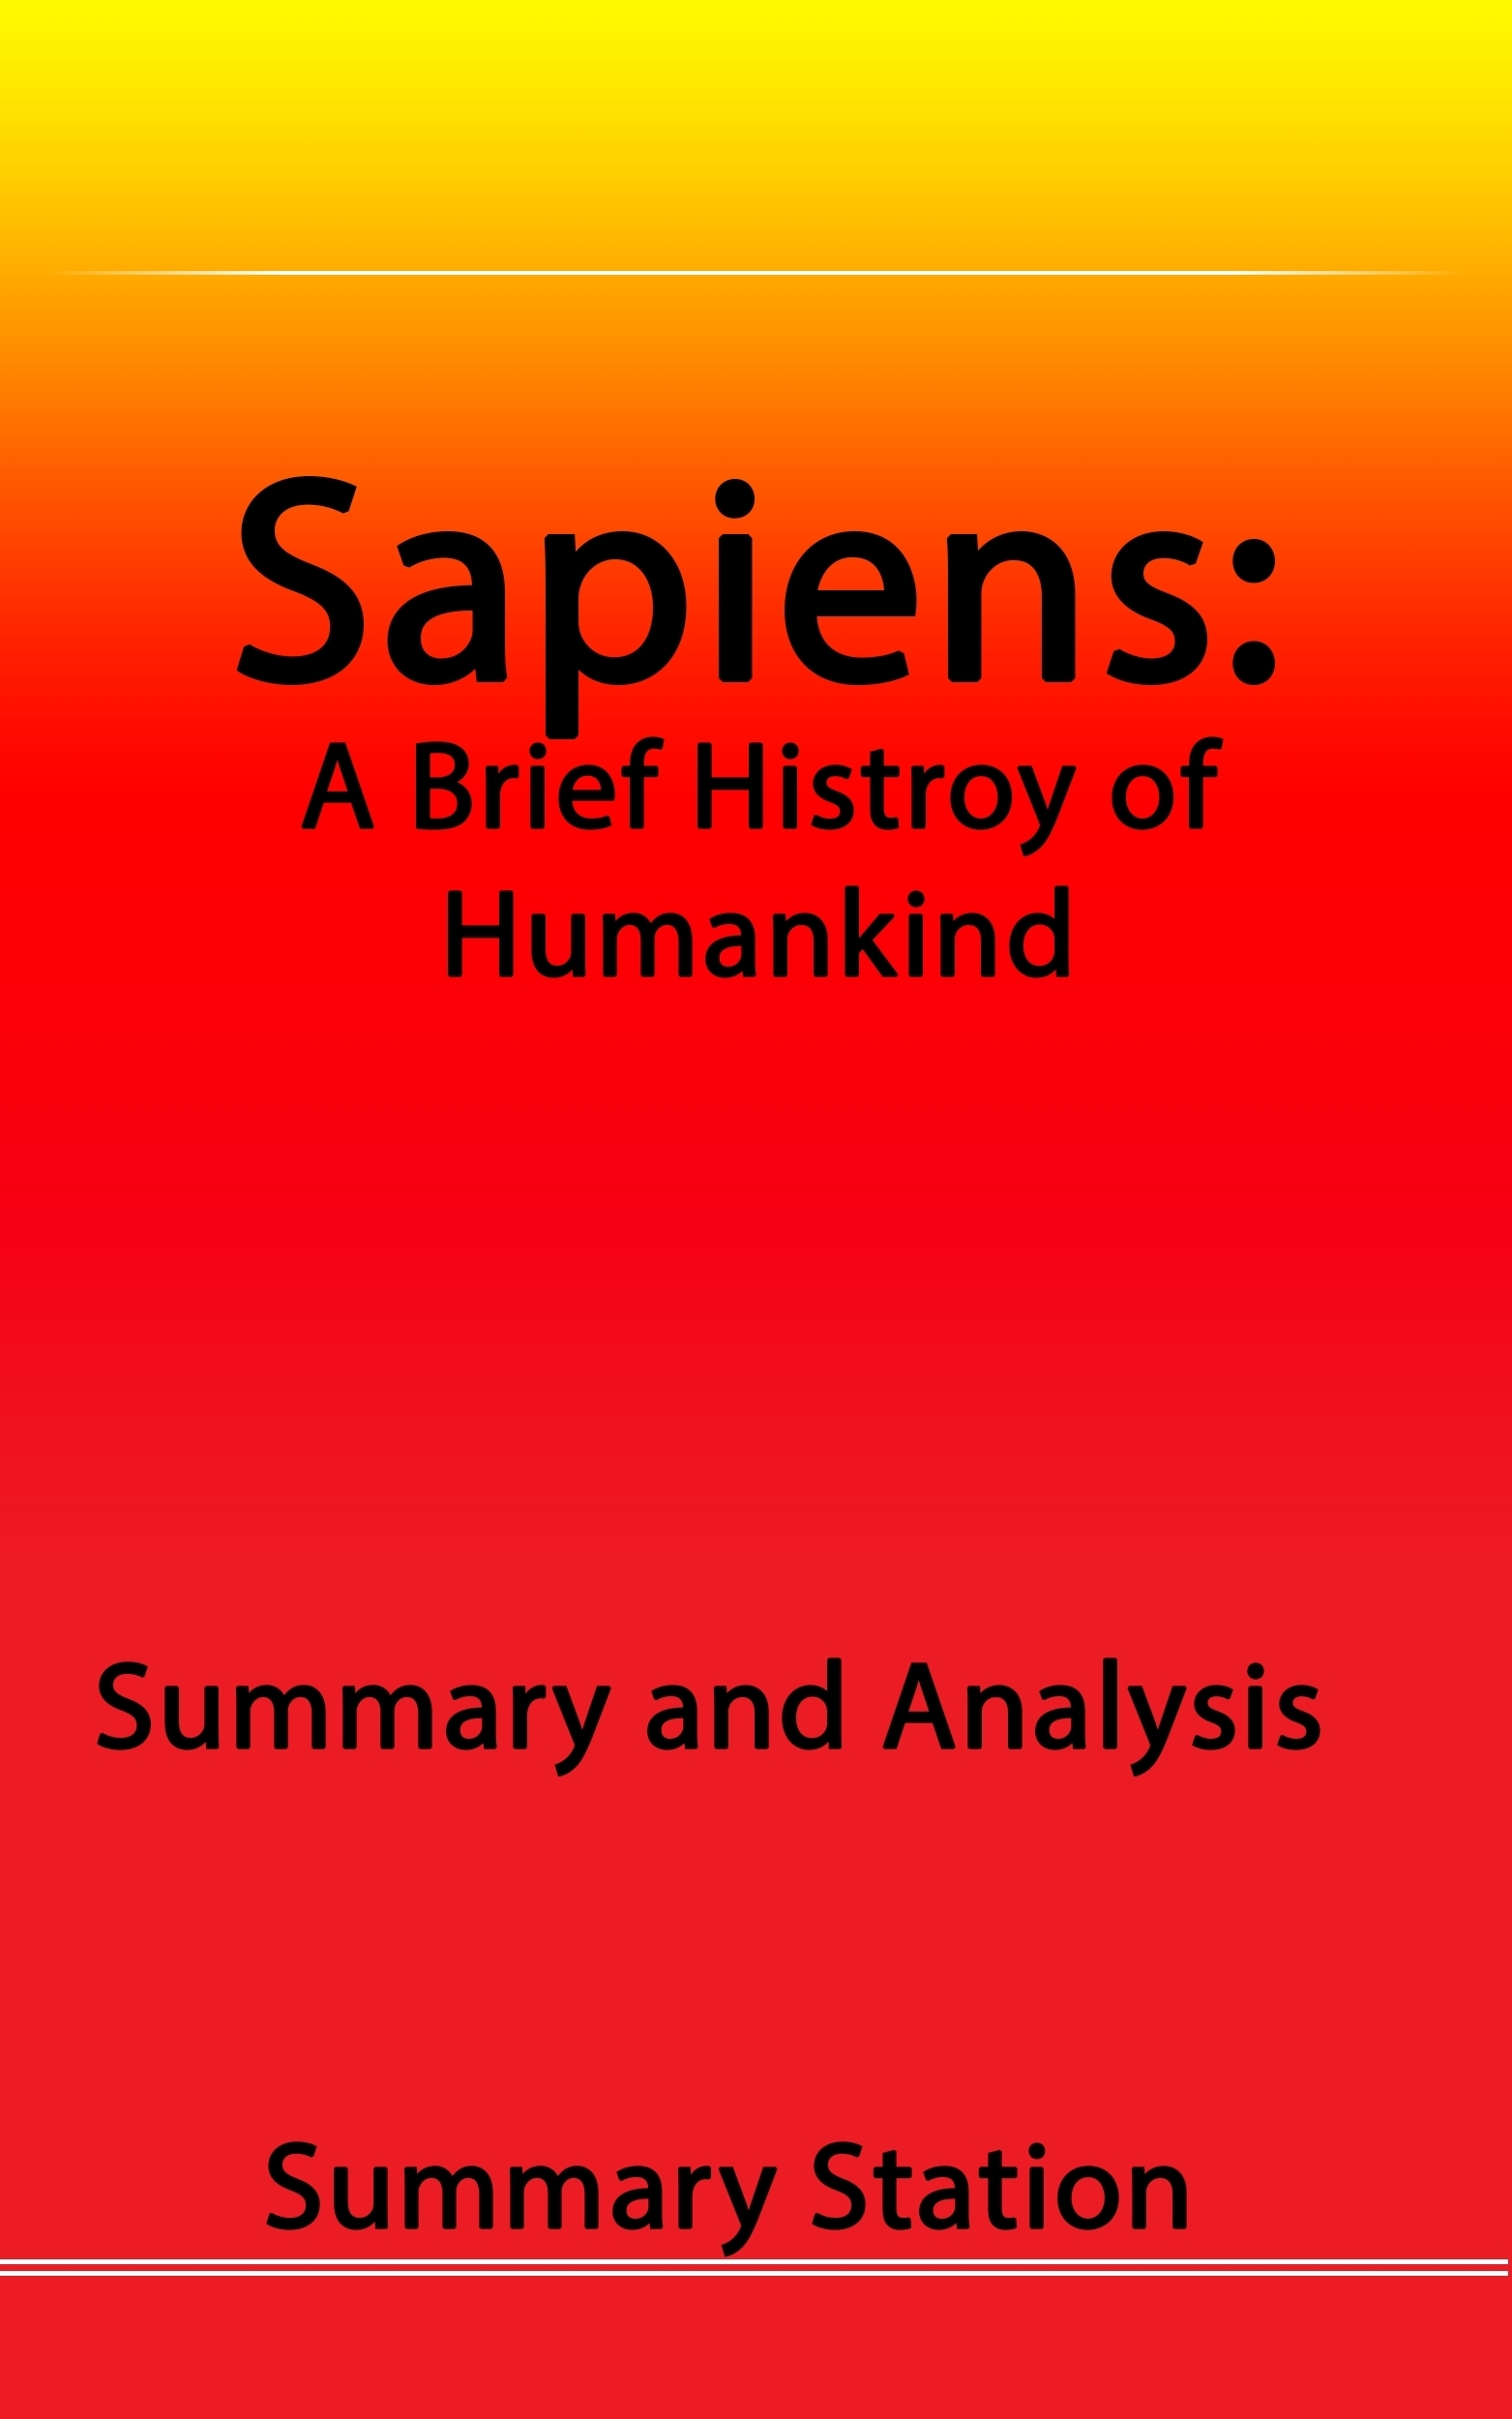 Sapiens: A Brief History of Humankind | Summary and Analysis  by  Summary Station